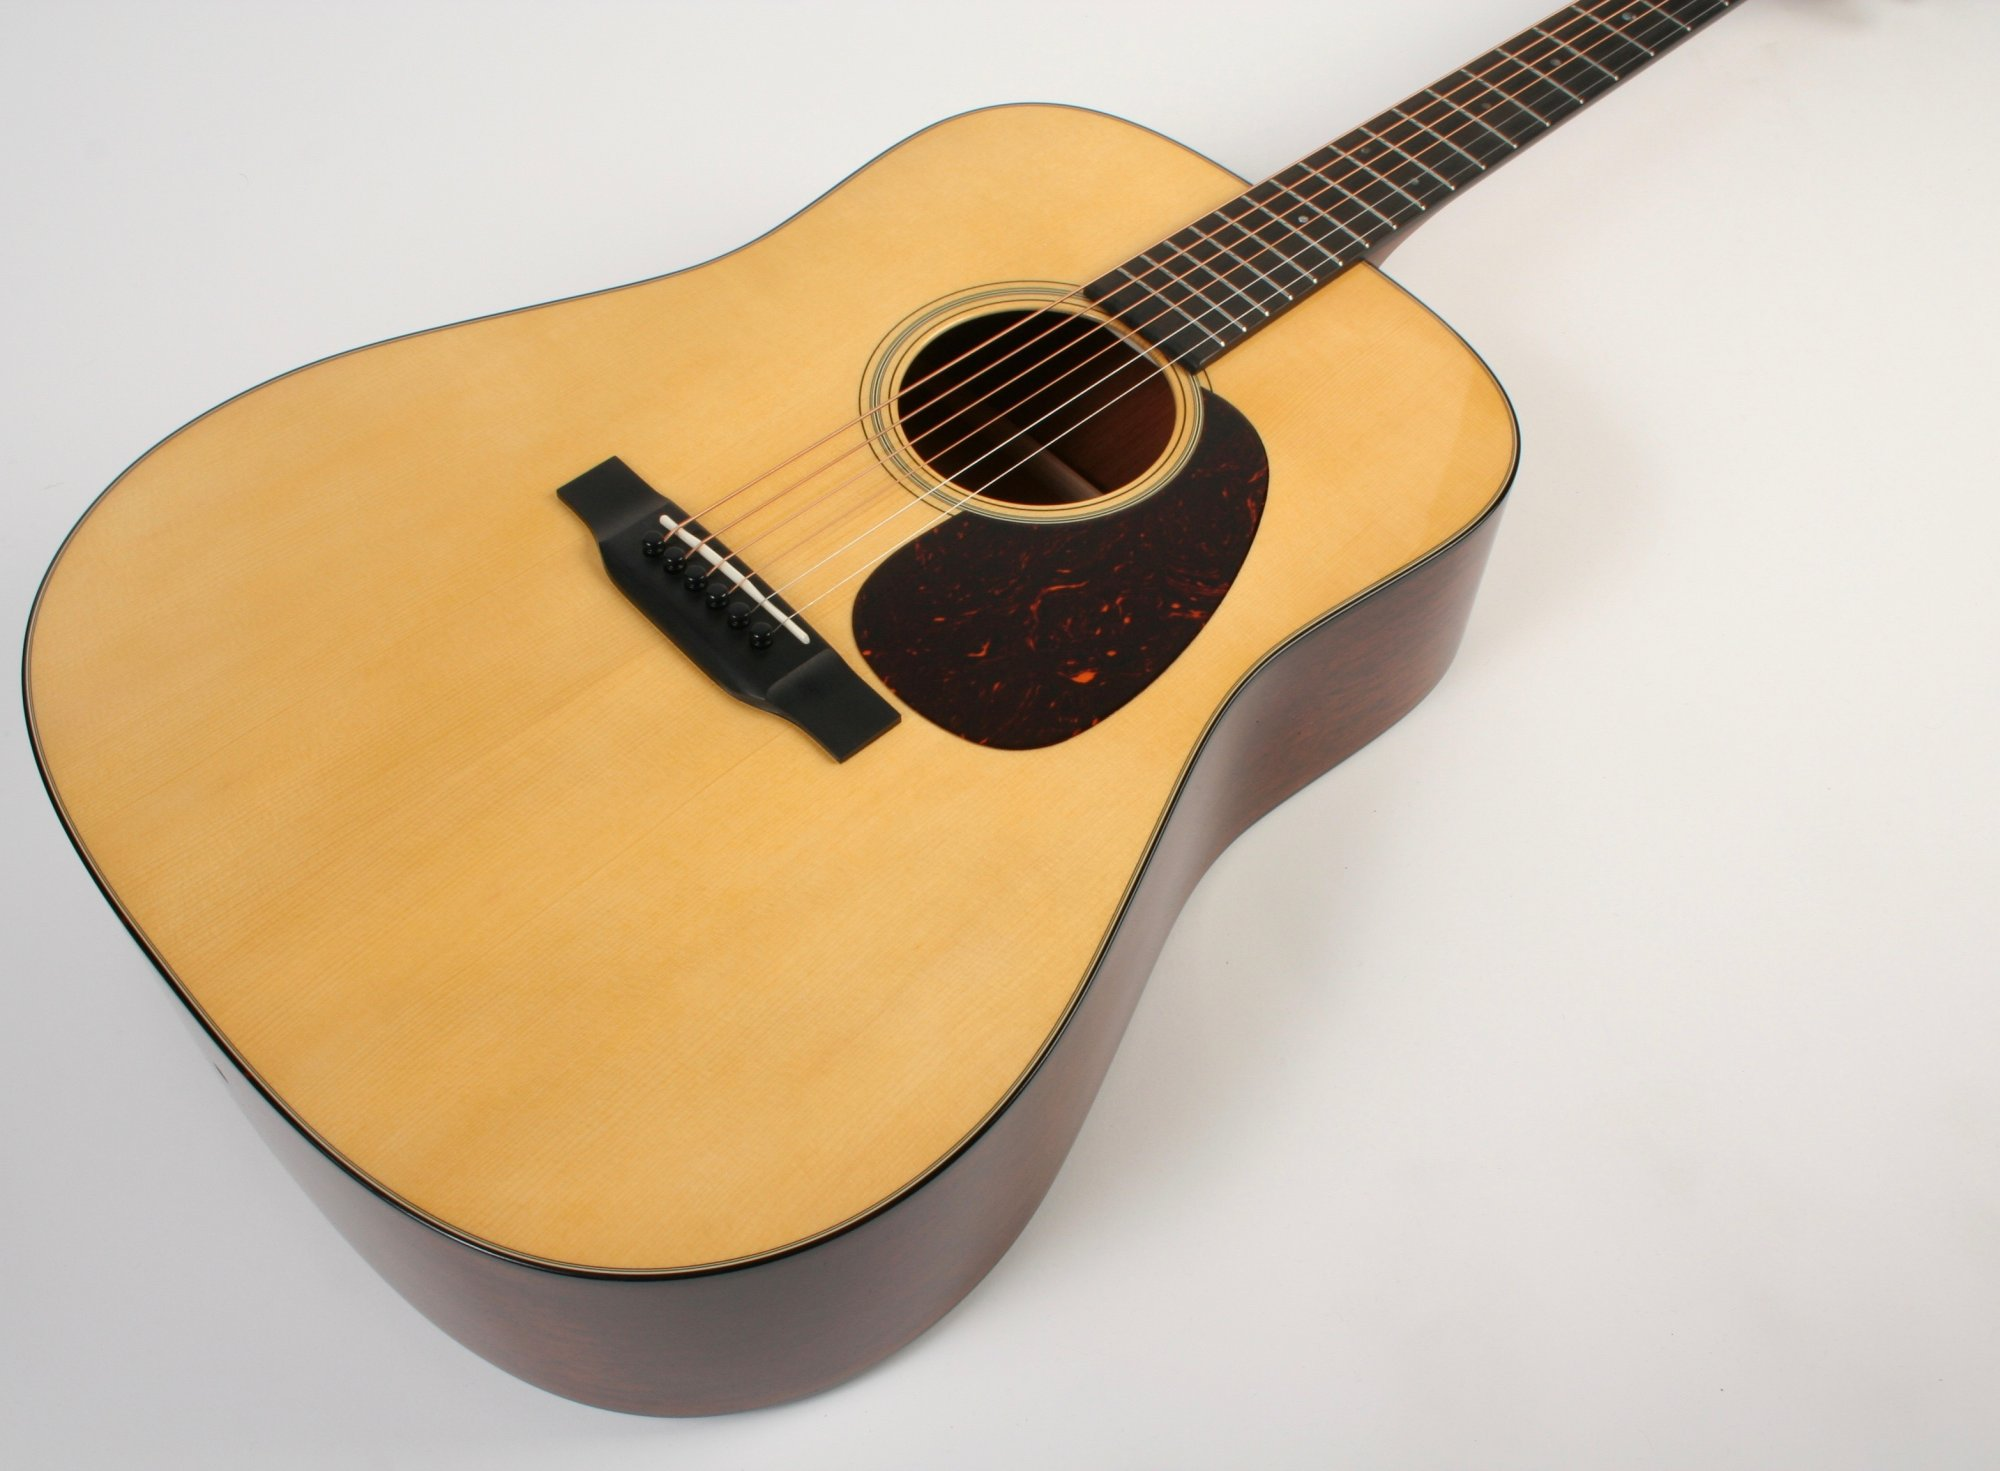 Martin Custom Shop Dreadnought D Size 18 Style Adirondack Top Modified Low Oval Neck Profile 1-11/16 Nut